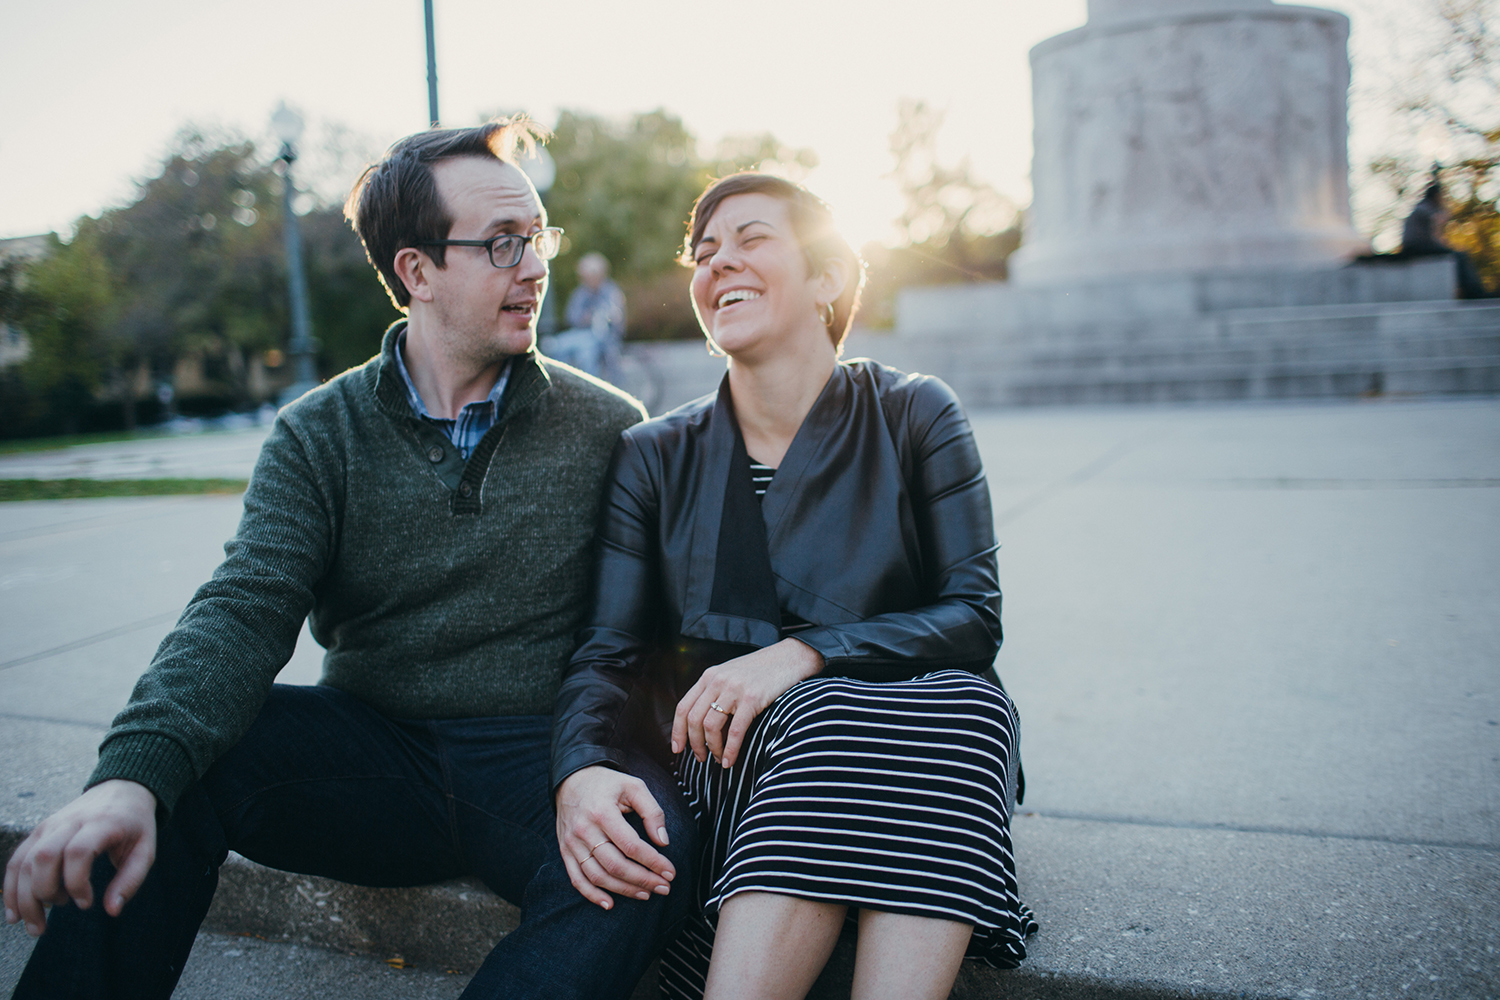 chicago_engagement_photos_logan_square_west_side_elearnor_mark (23 of 32).jpg